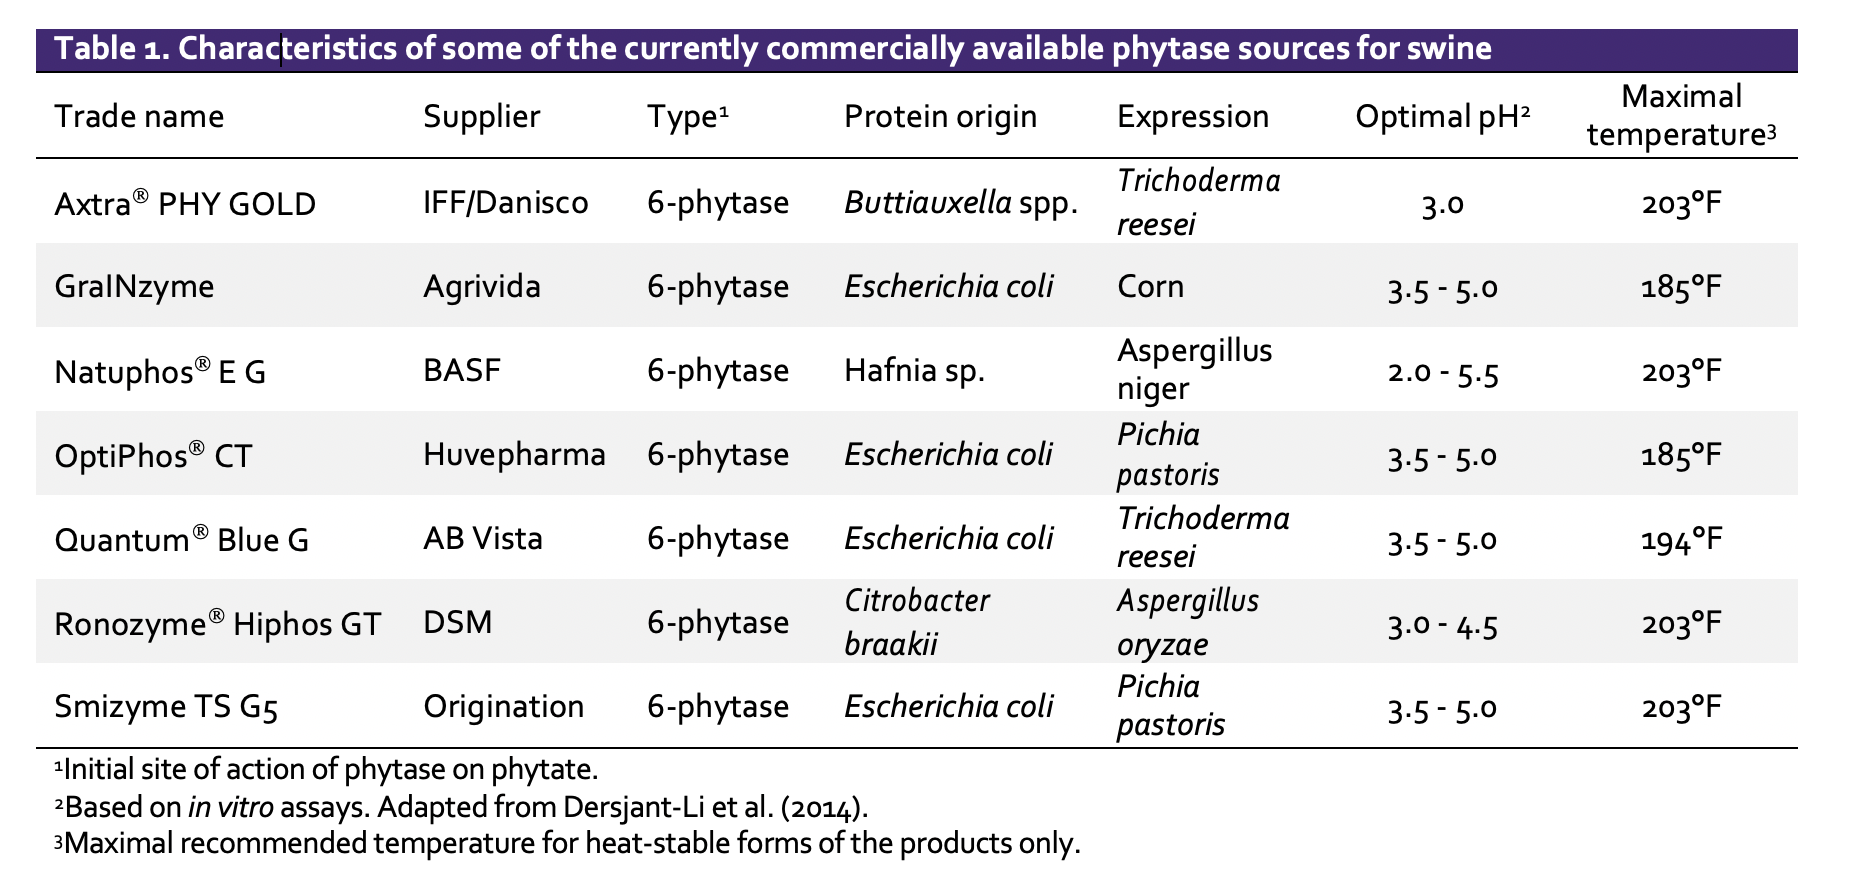 Characteristics of commercial phytase for swine diets